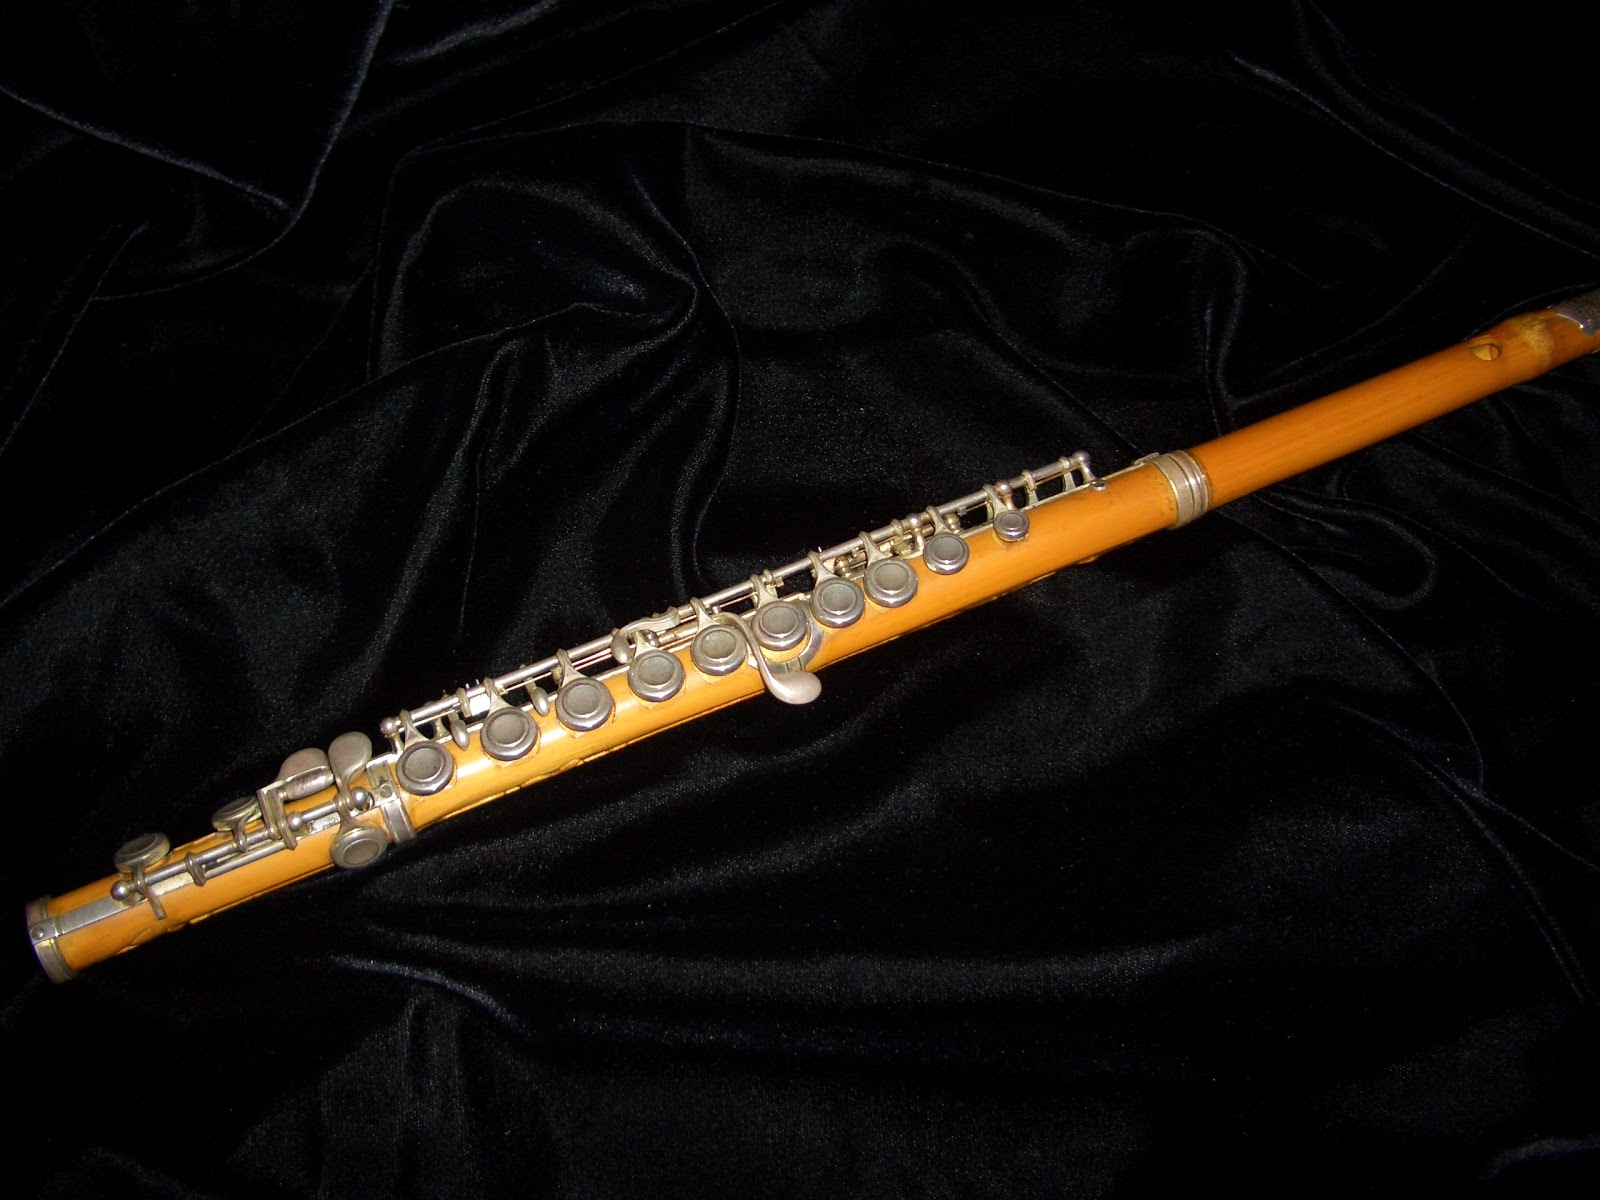 Flute Builder The Bamboo Flute